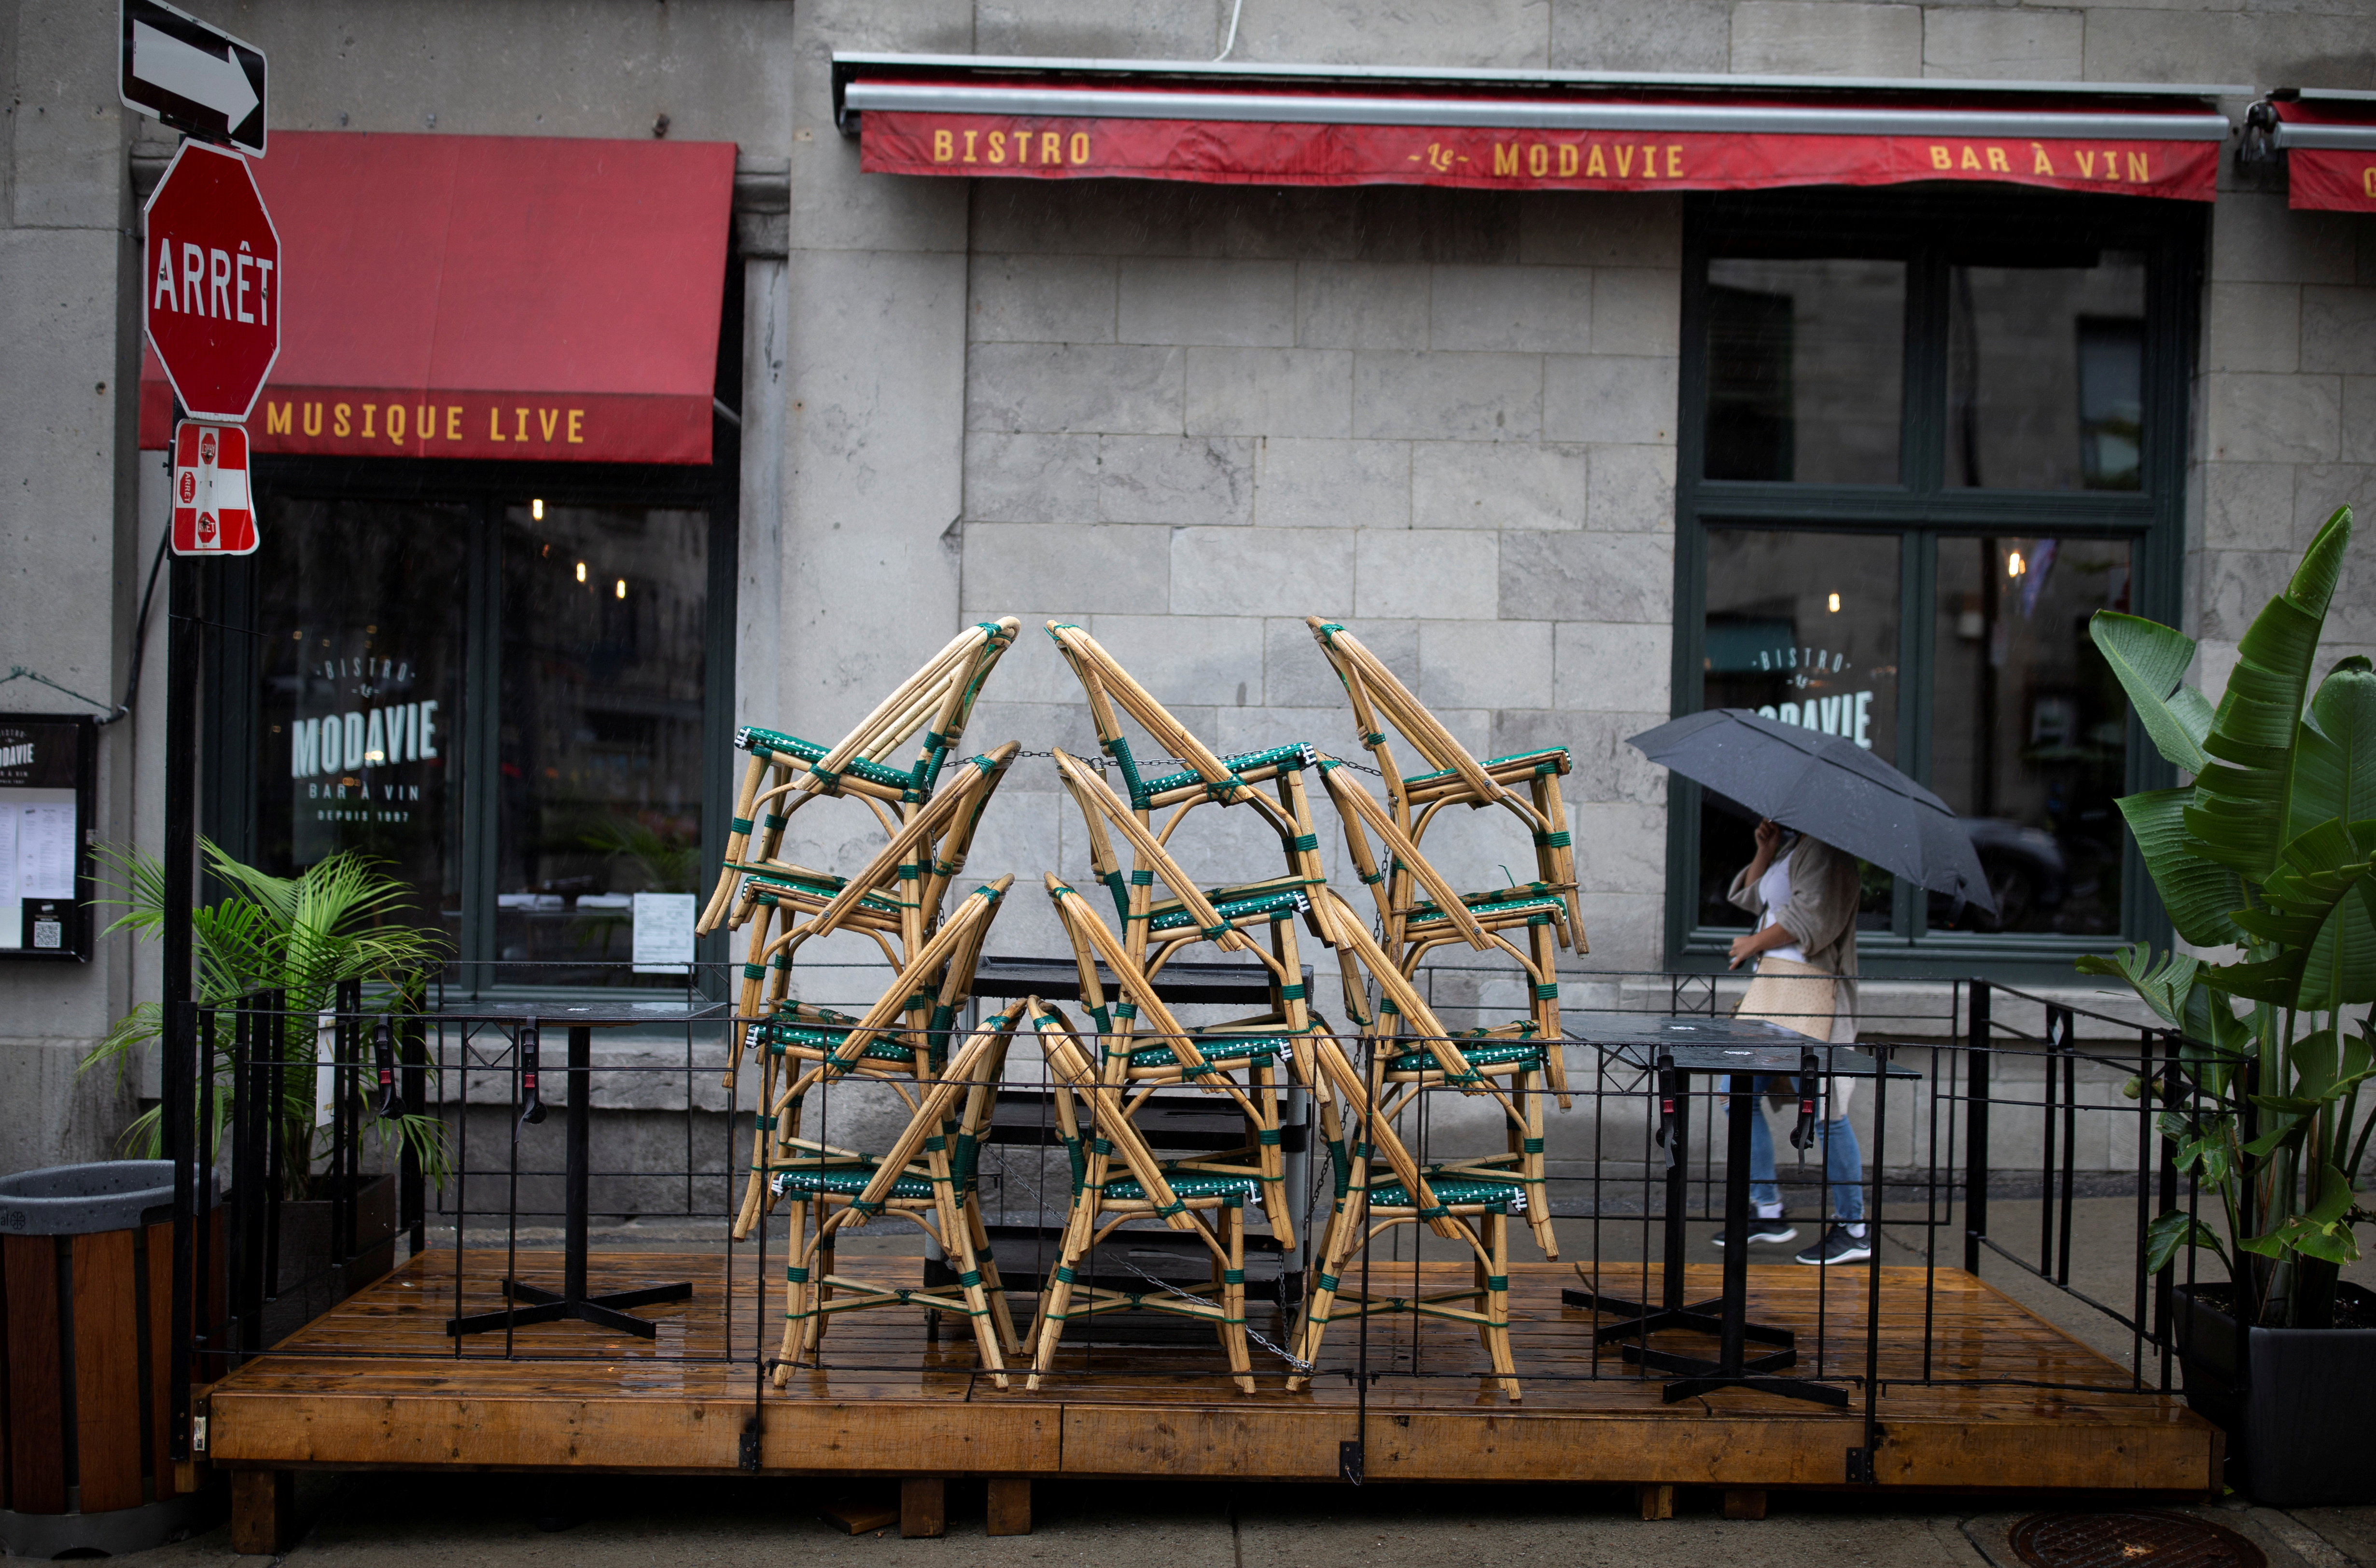 Chairs are stacked outside a bistro in Montreal, Quebec, Canada September 29, 2020. REUTERS/Christinne Muschi